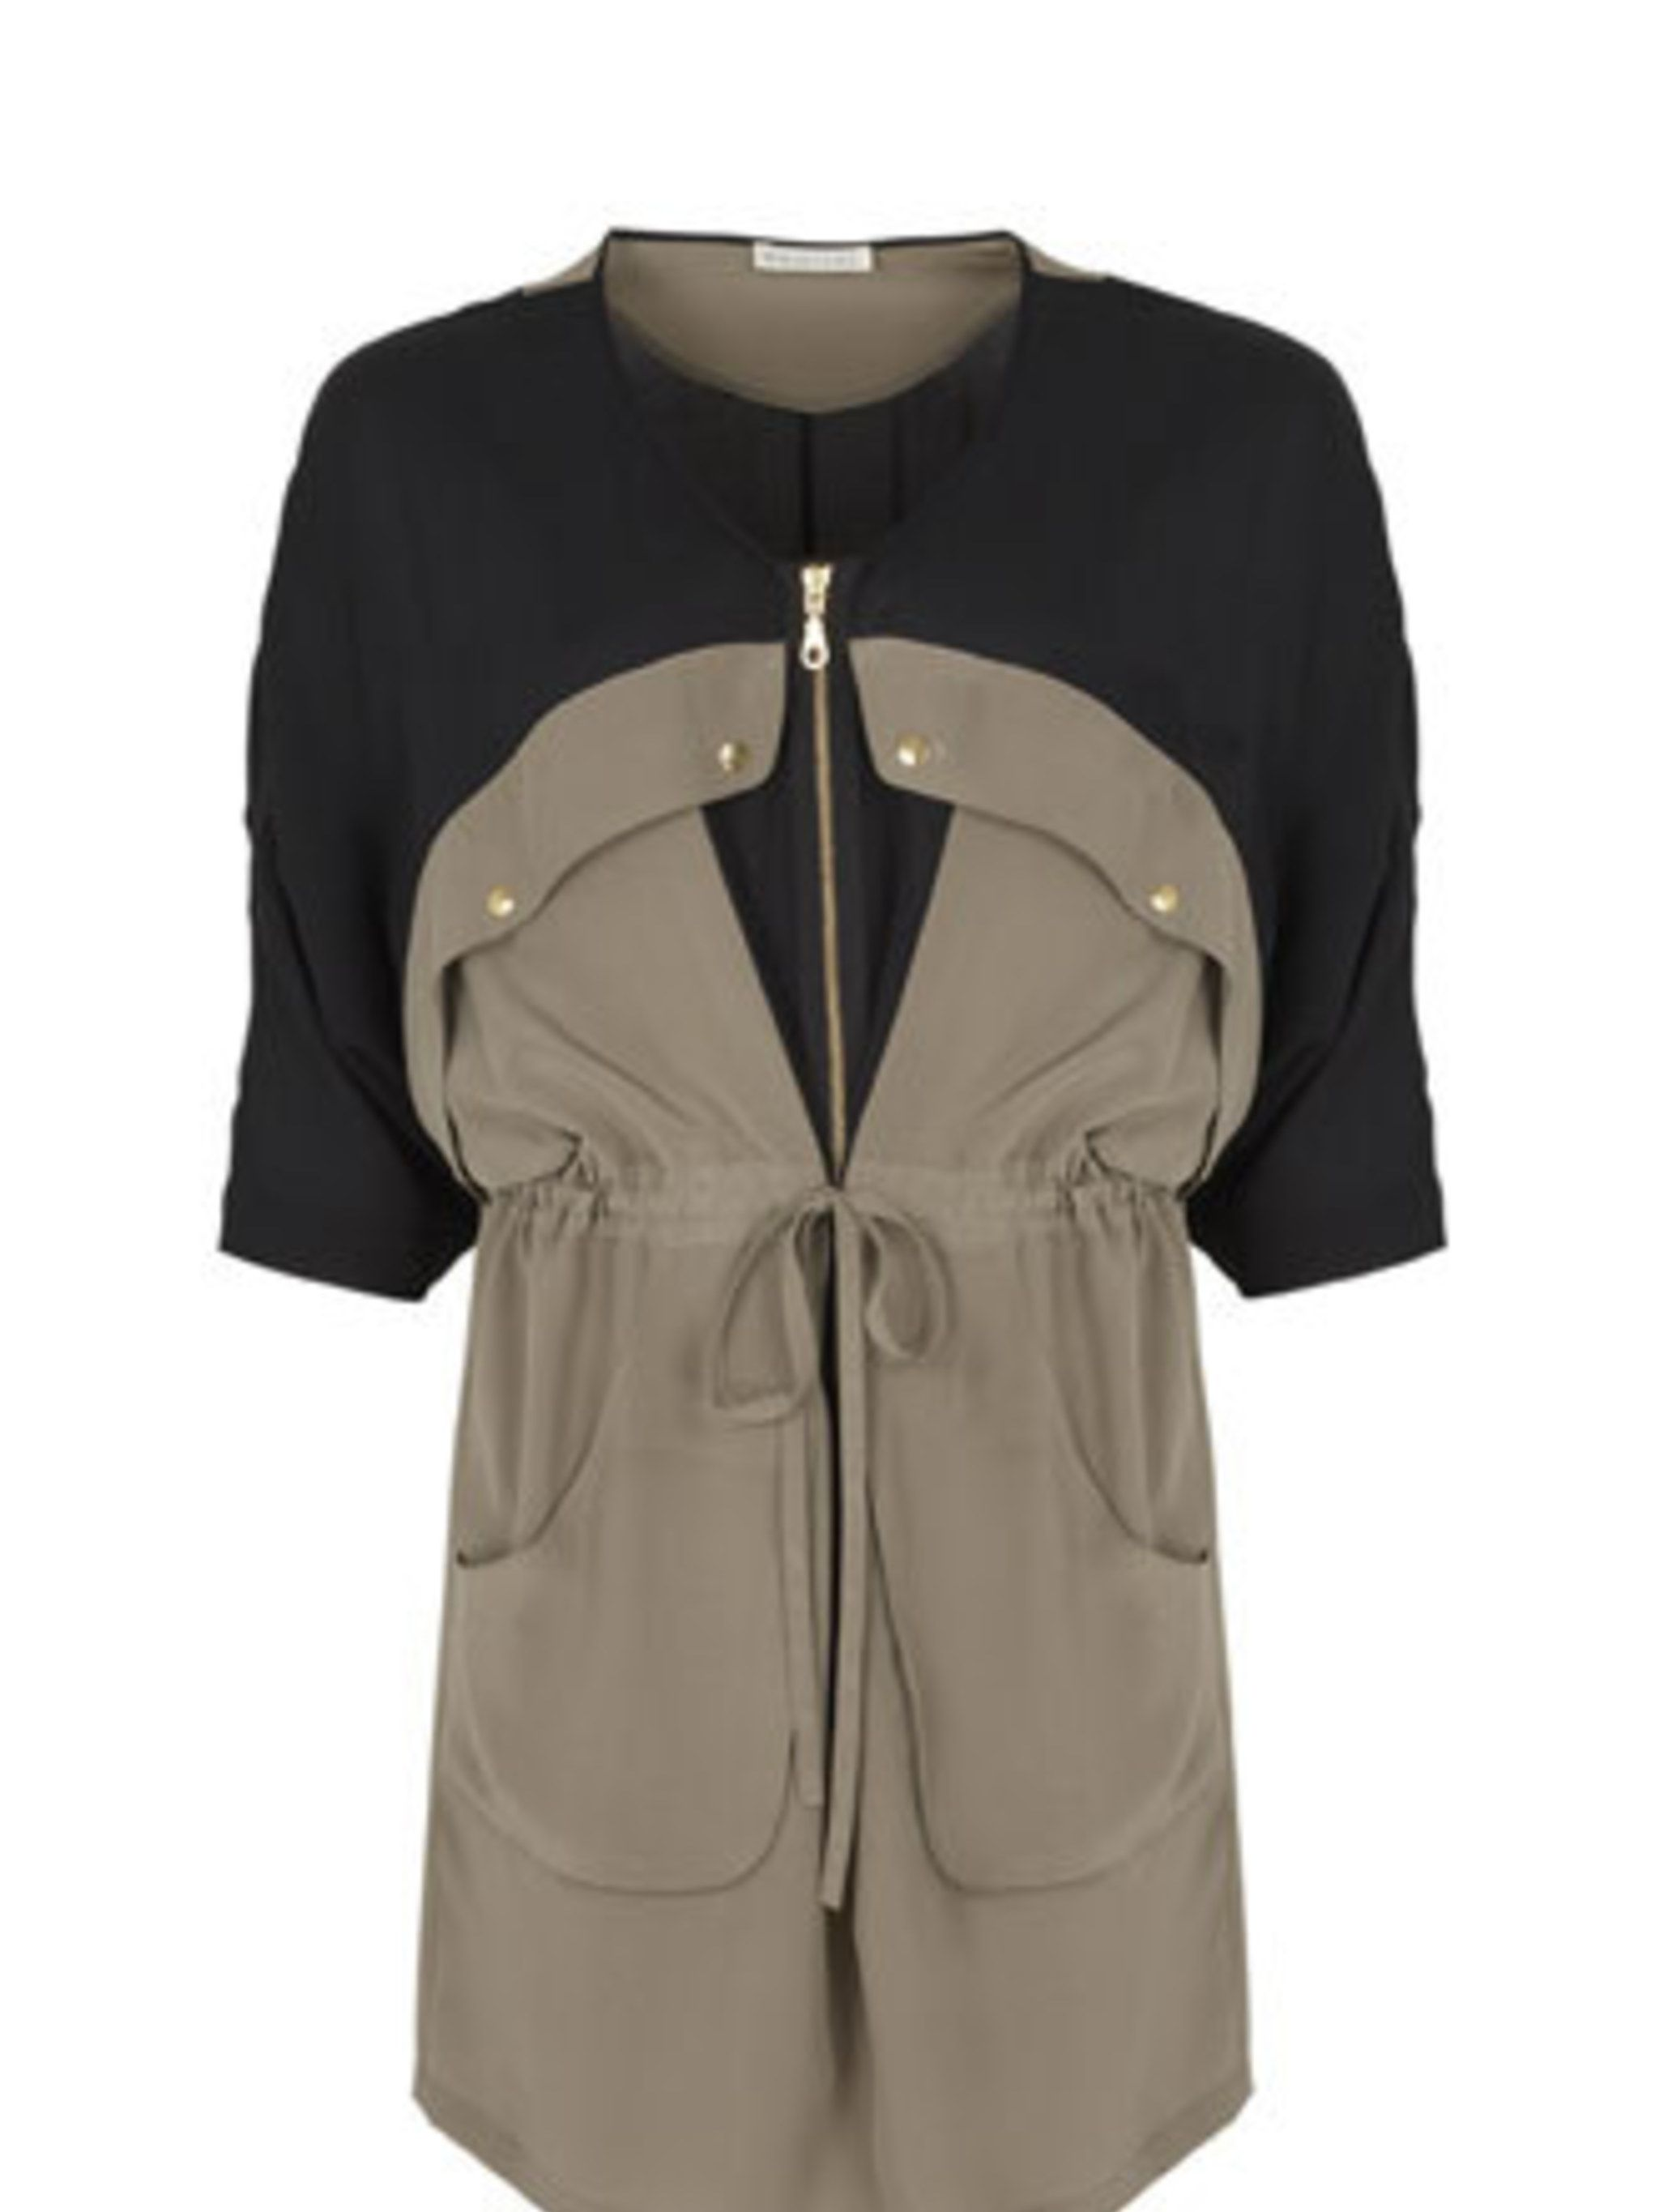 """<p>The ultimate office-to-party dress. Pair with gold jewellery, opaque tights and dancing shoes.</p><p>Dress, £125 by <a href=""""http://www.whistles.co.uk/"""">Whistles</a></p>"""